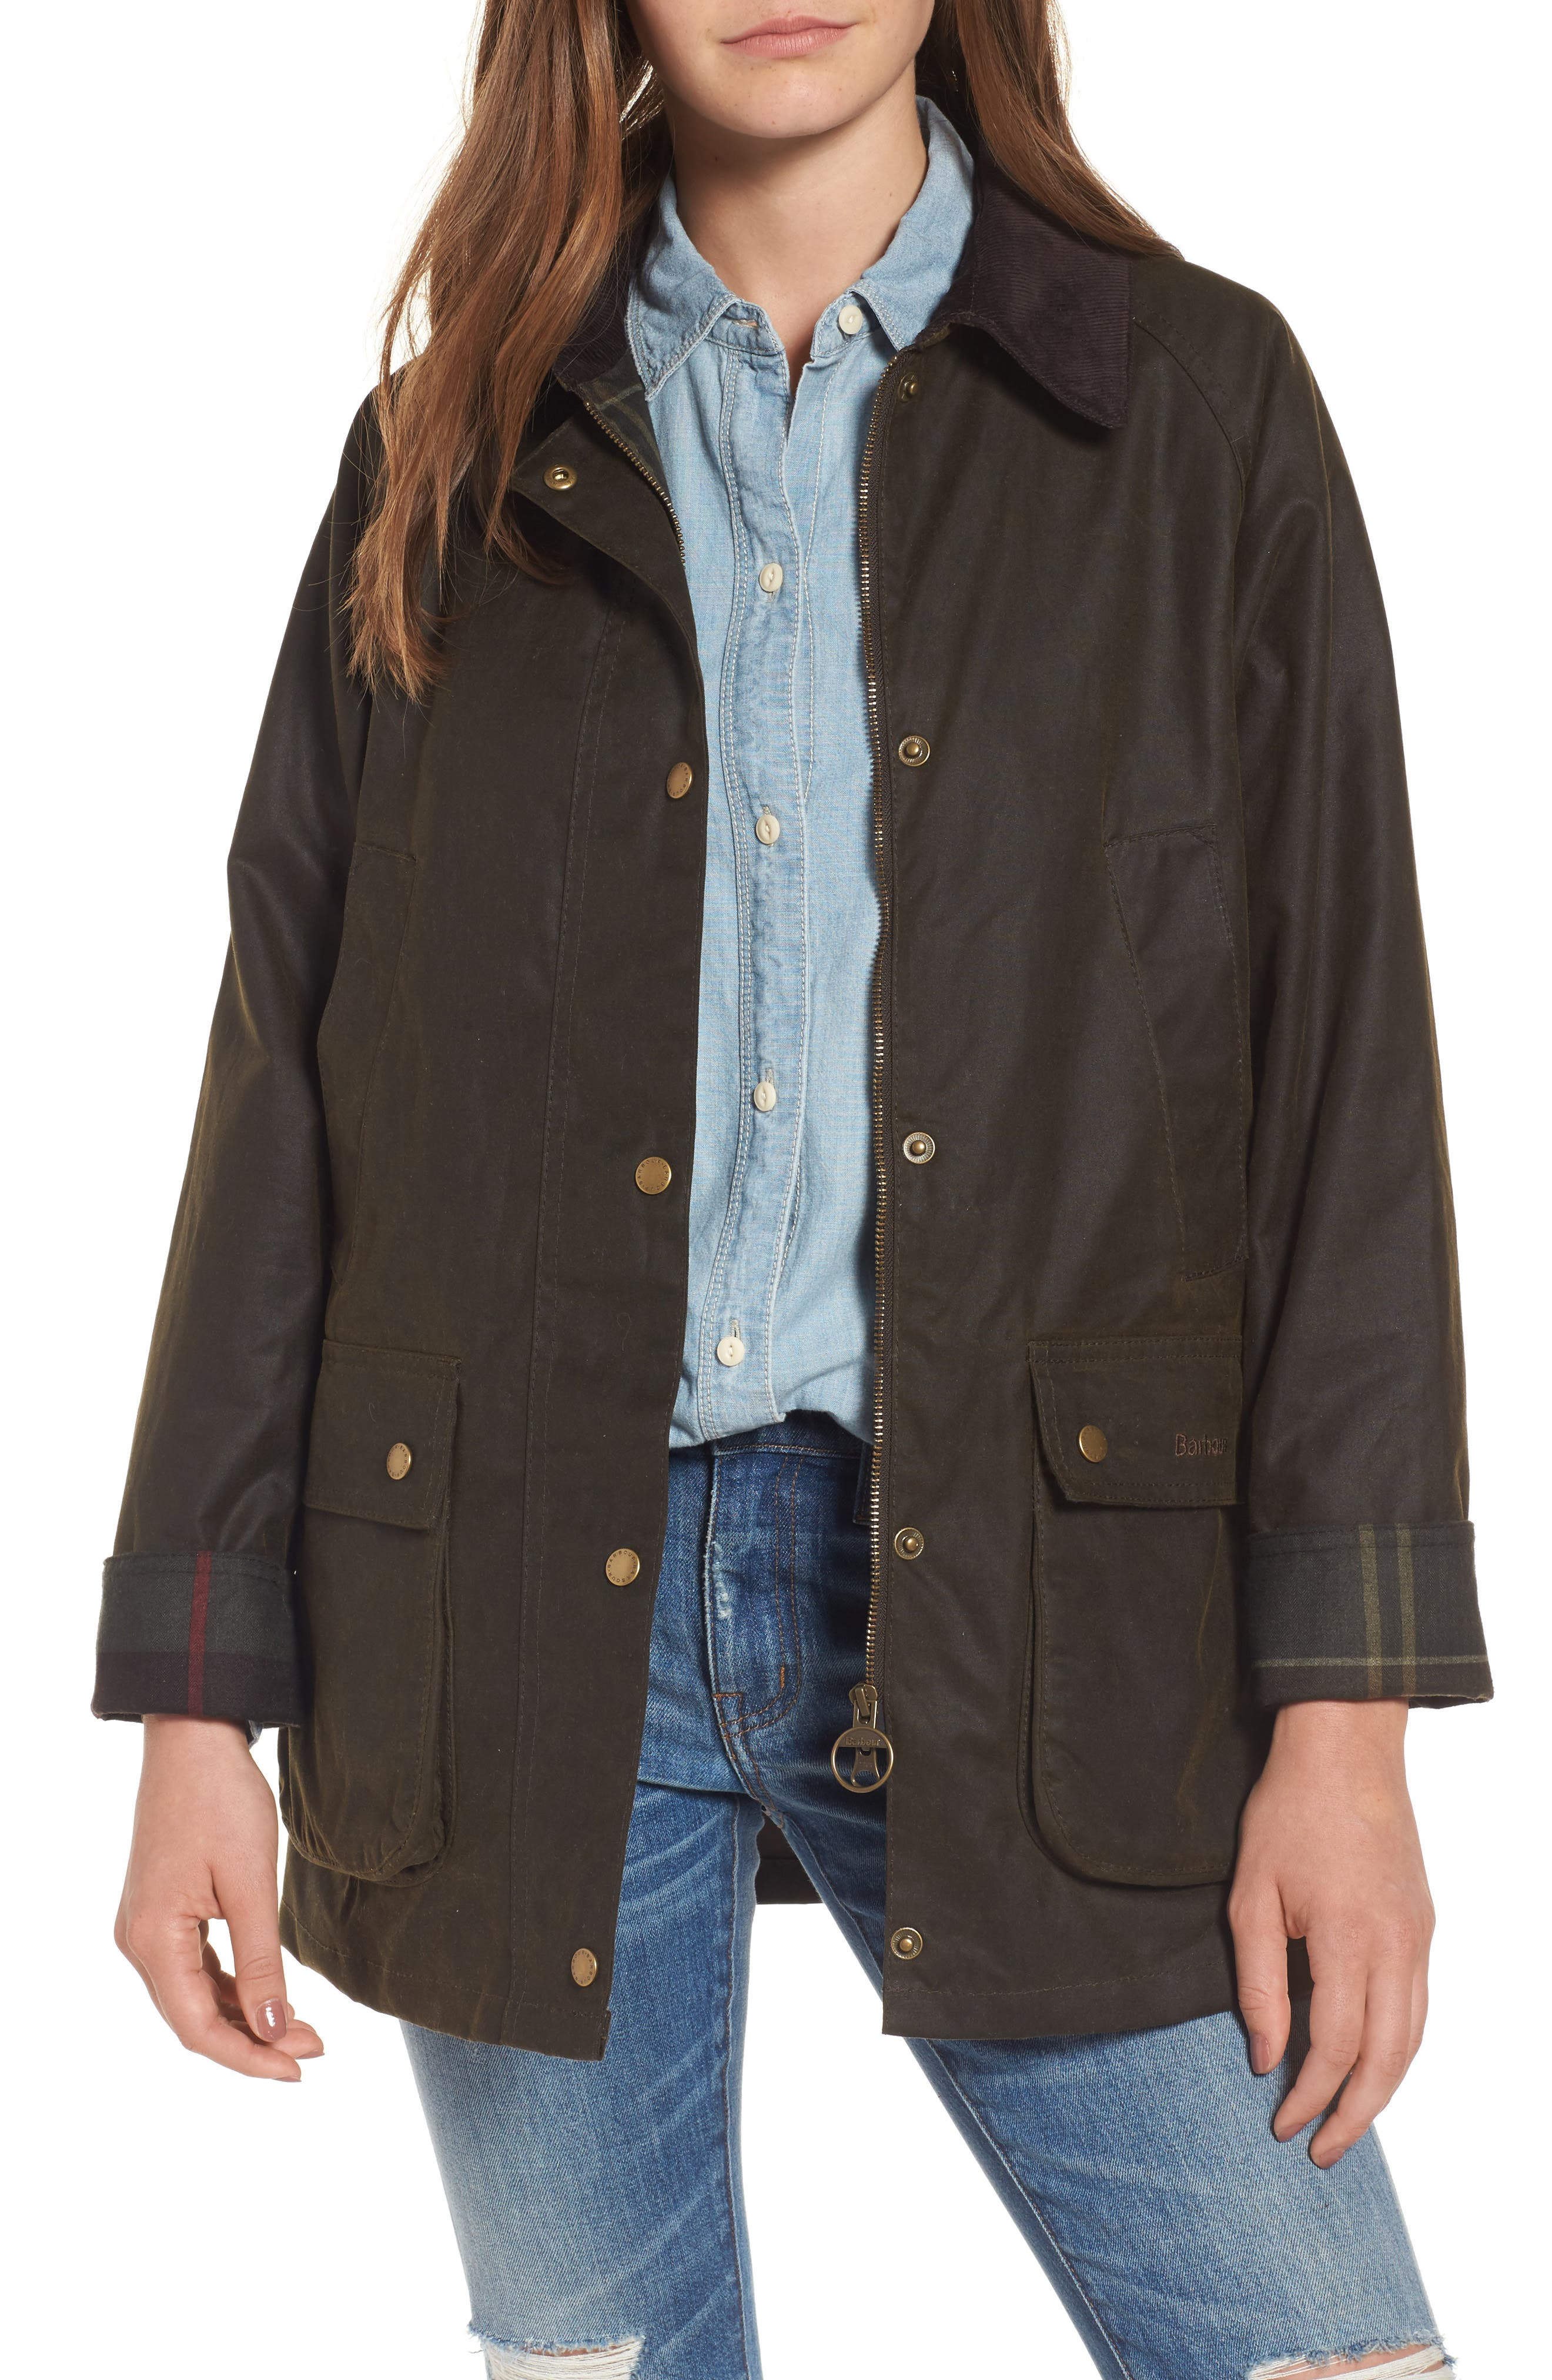 0486f75c001fc Barbour of England - Women's - Country / Outddors Clothing